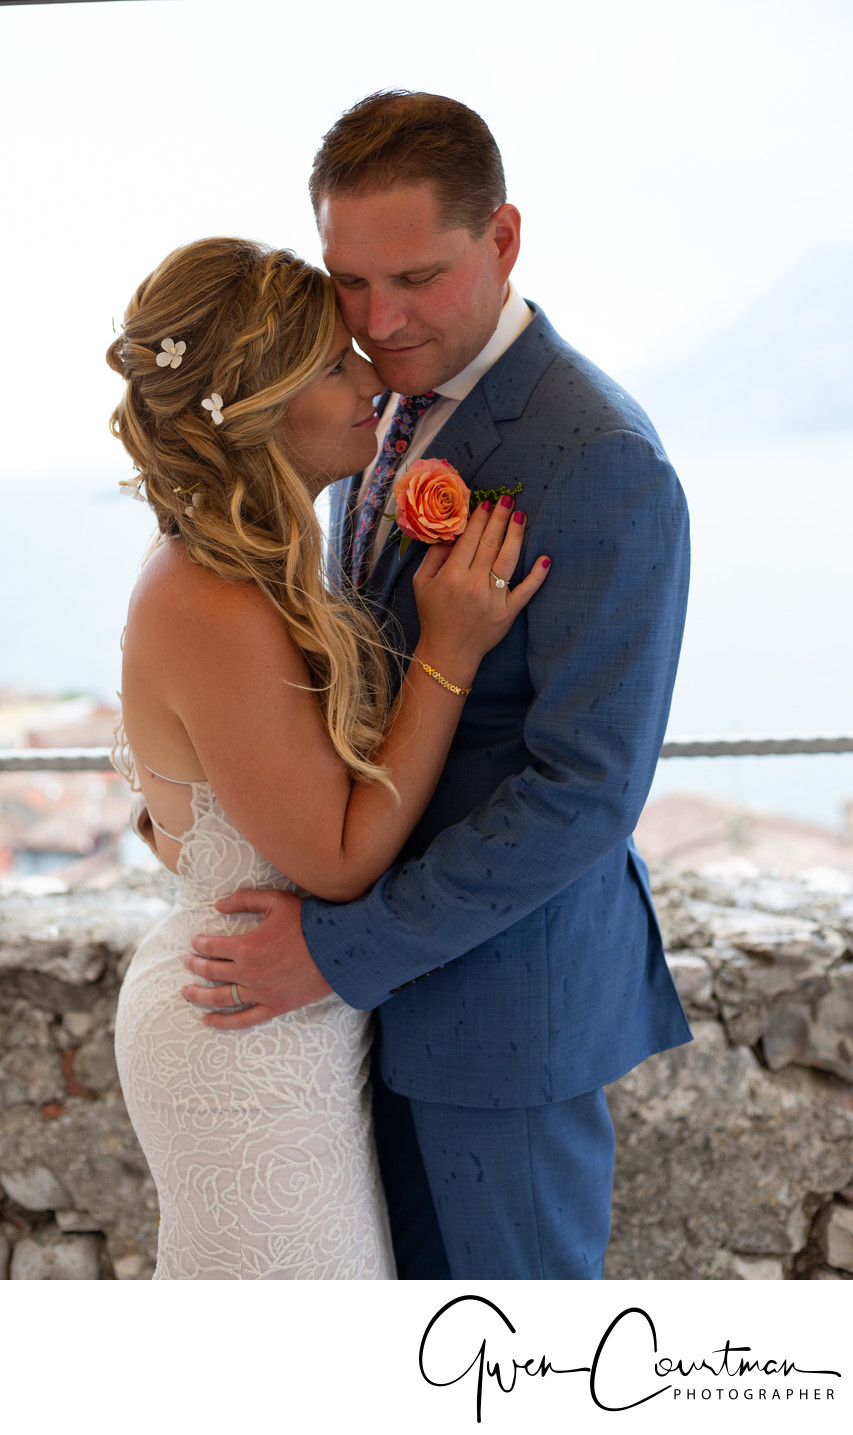 Amercian Weddings in Italy, Wedding Photography.